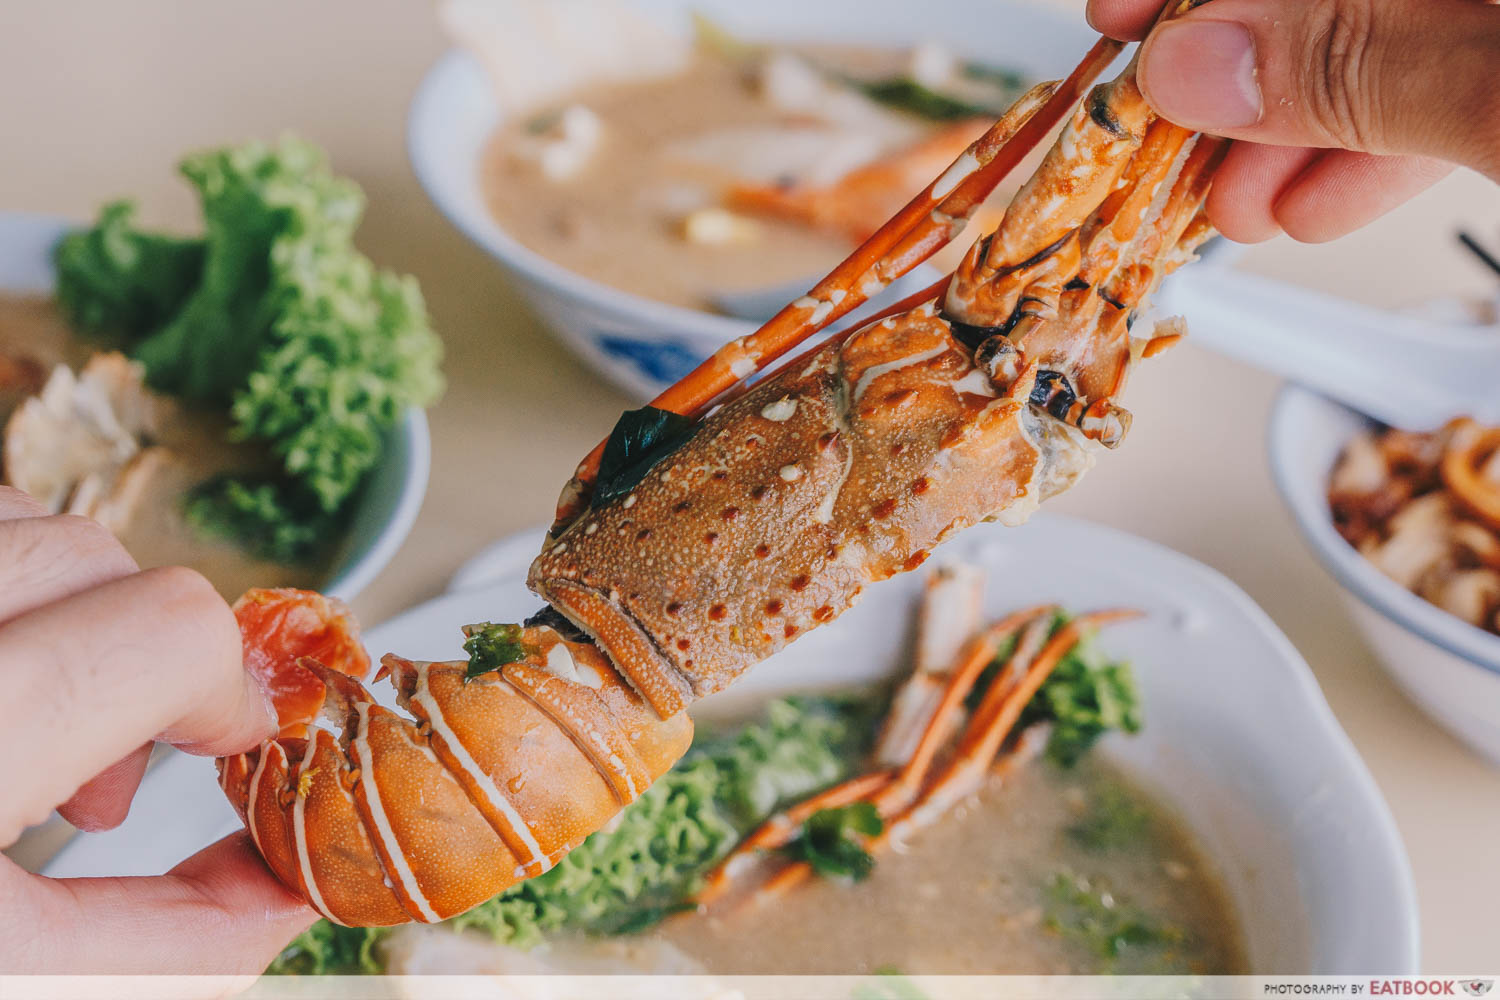 Shun Feng Crayfish Delight - Spiny Lobster Appearance